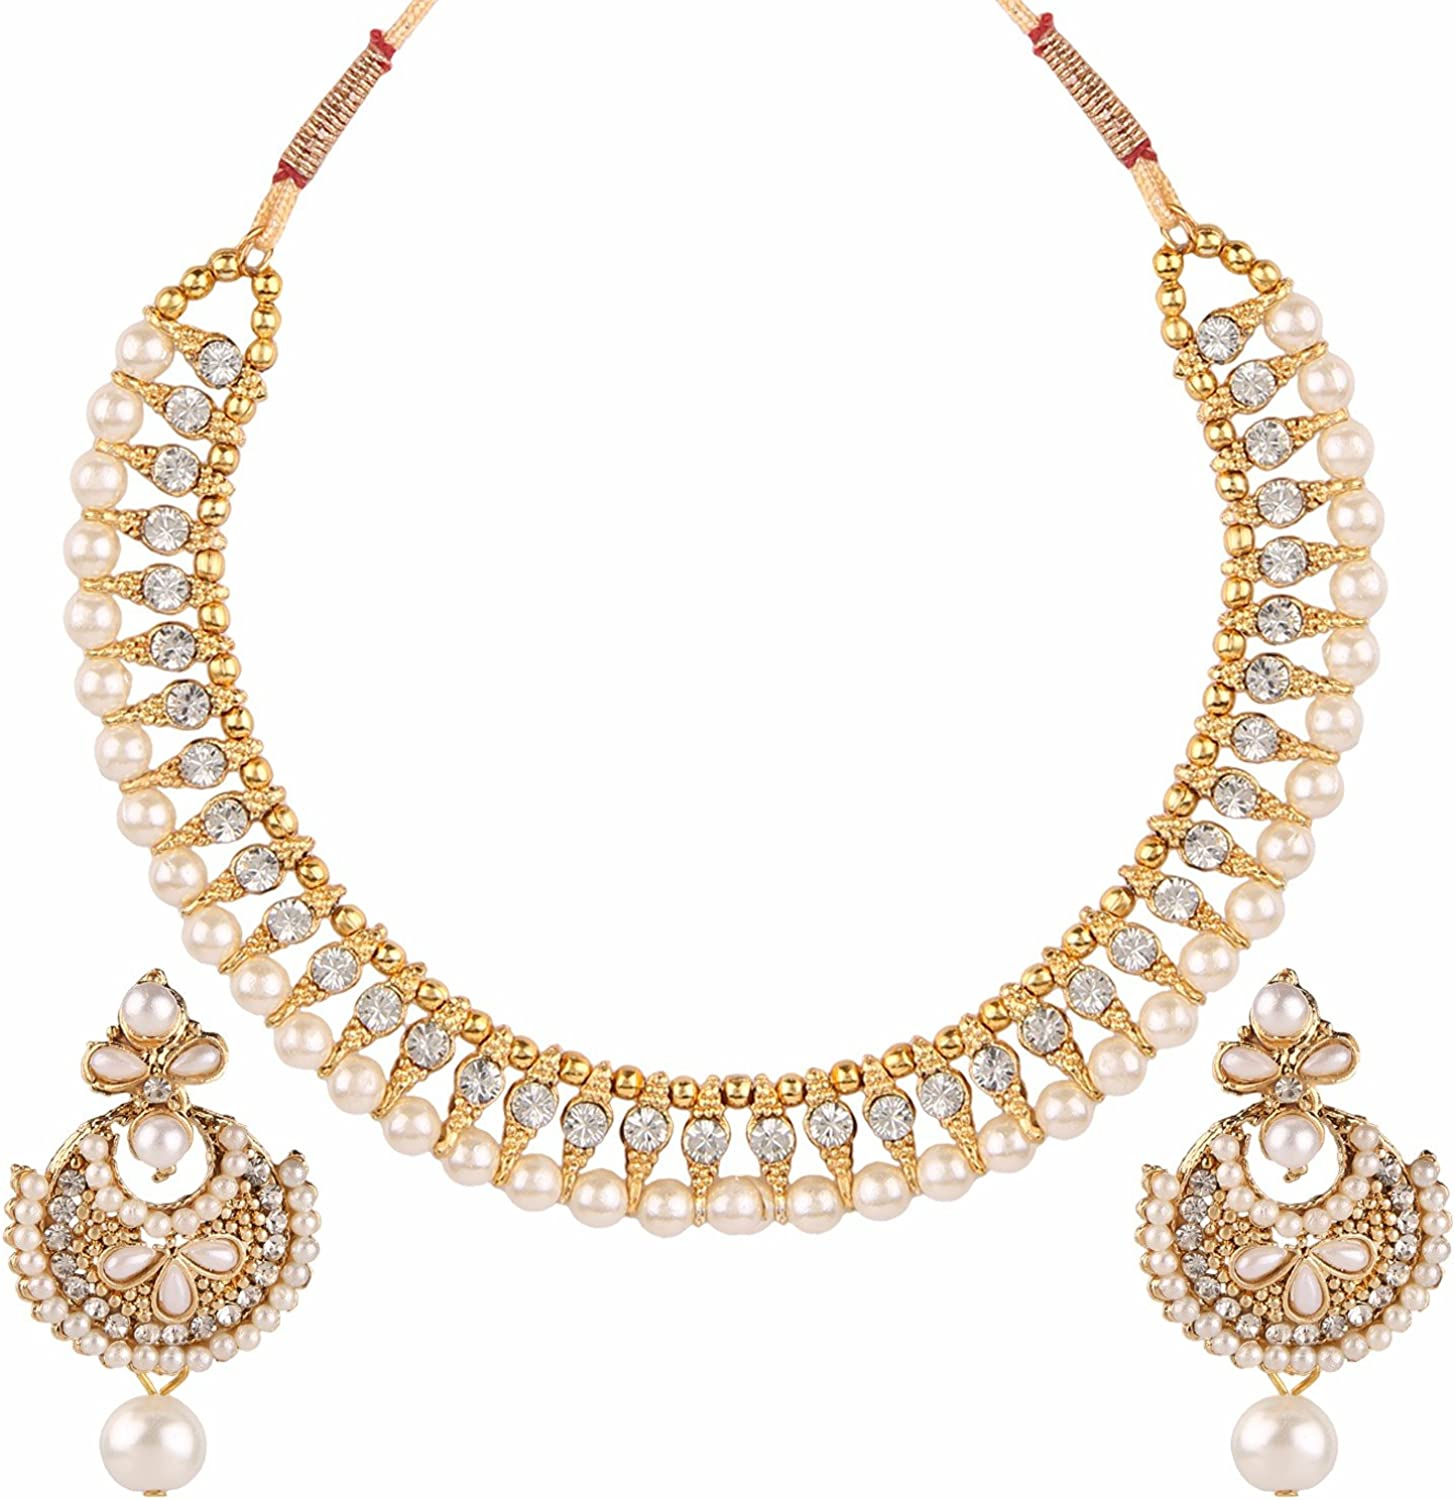 Efulgenz Indian Bollywood Antique Ethnic Gold Tone Traditional Designer Jewelry Pearl Choker Necklace Set for Women and Girls: Amazon.es: Joyería